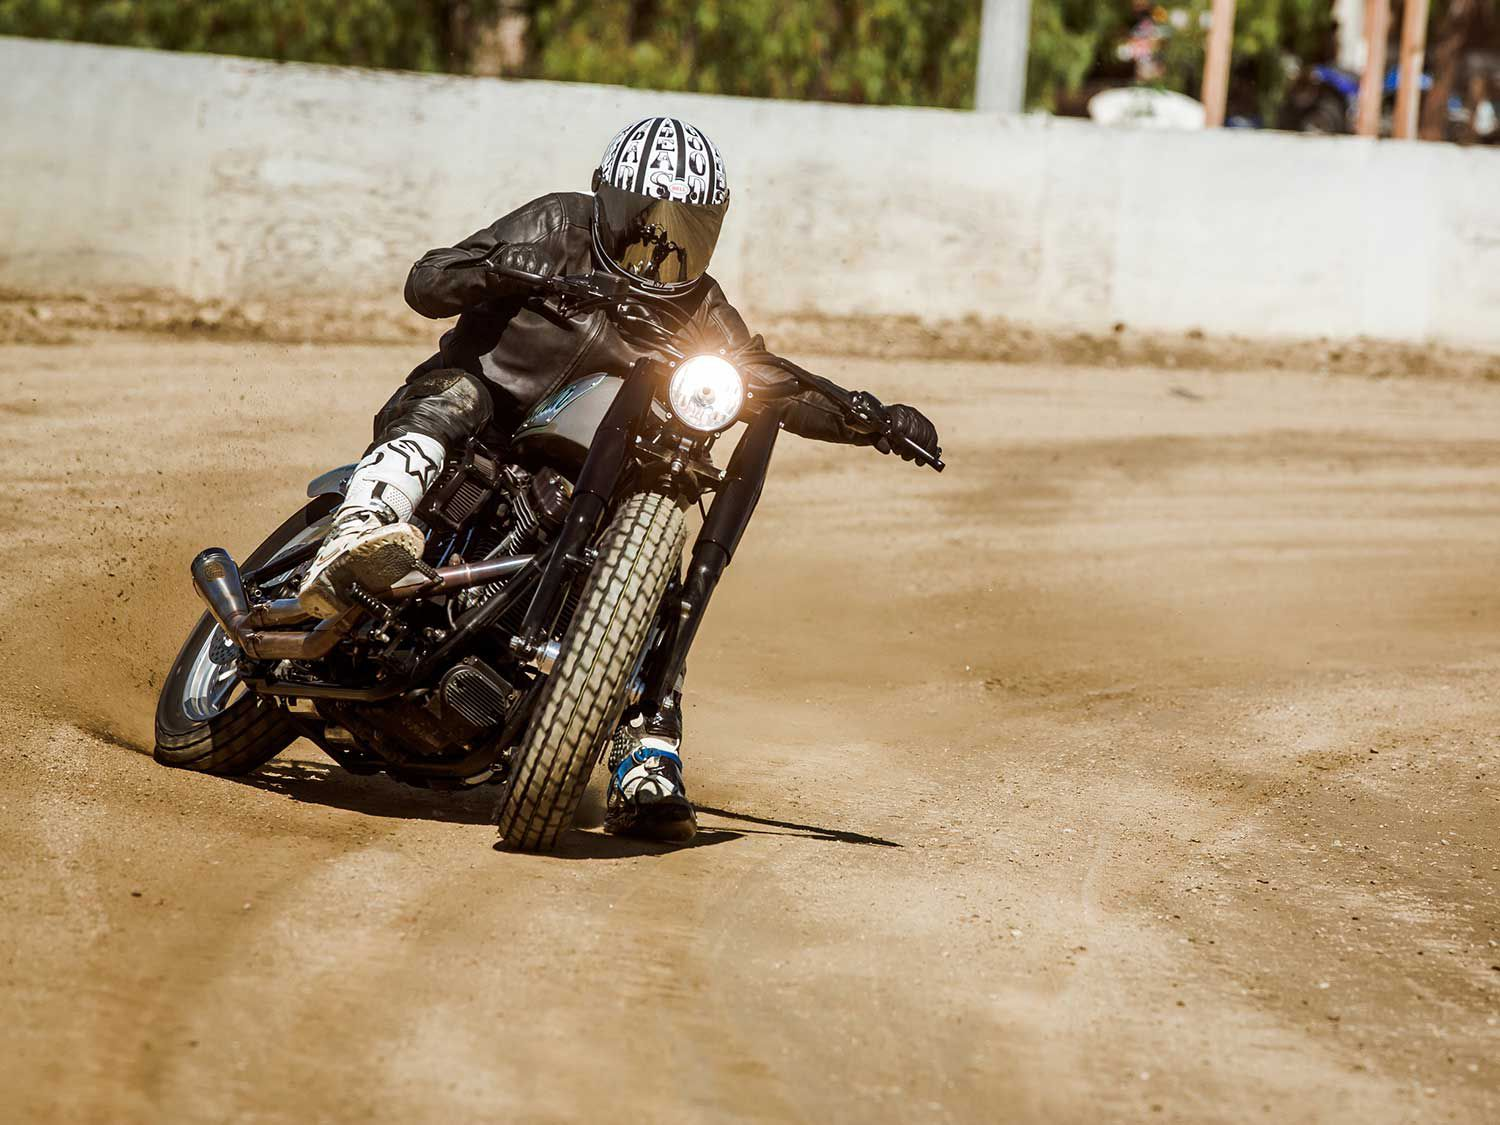 Racer, designer, and customizer Roland Sands will be named the Quail Motorcycle Gathering's Legend of the Sport at the 2020 event.